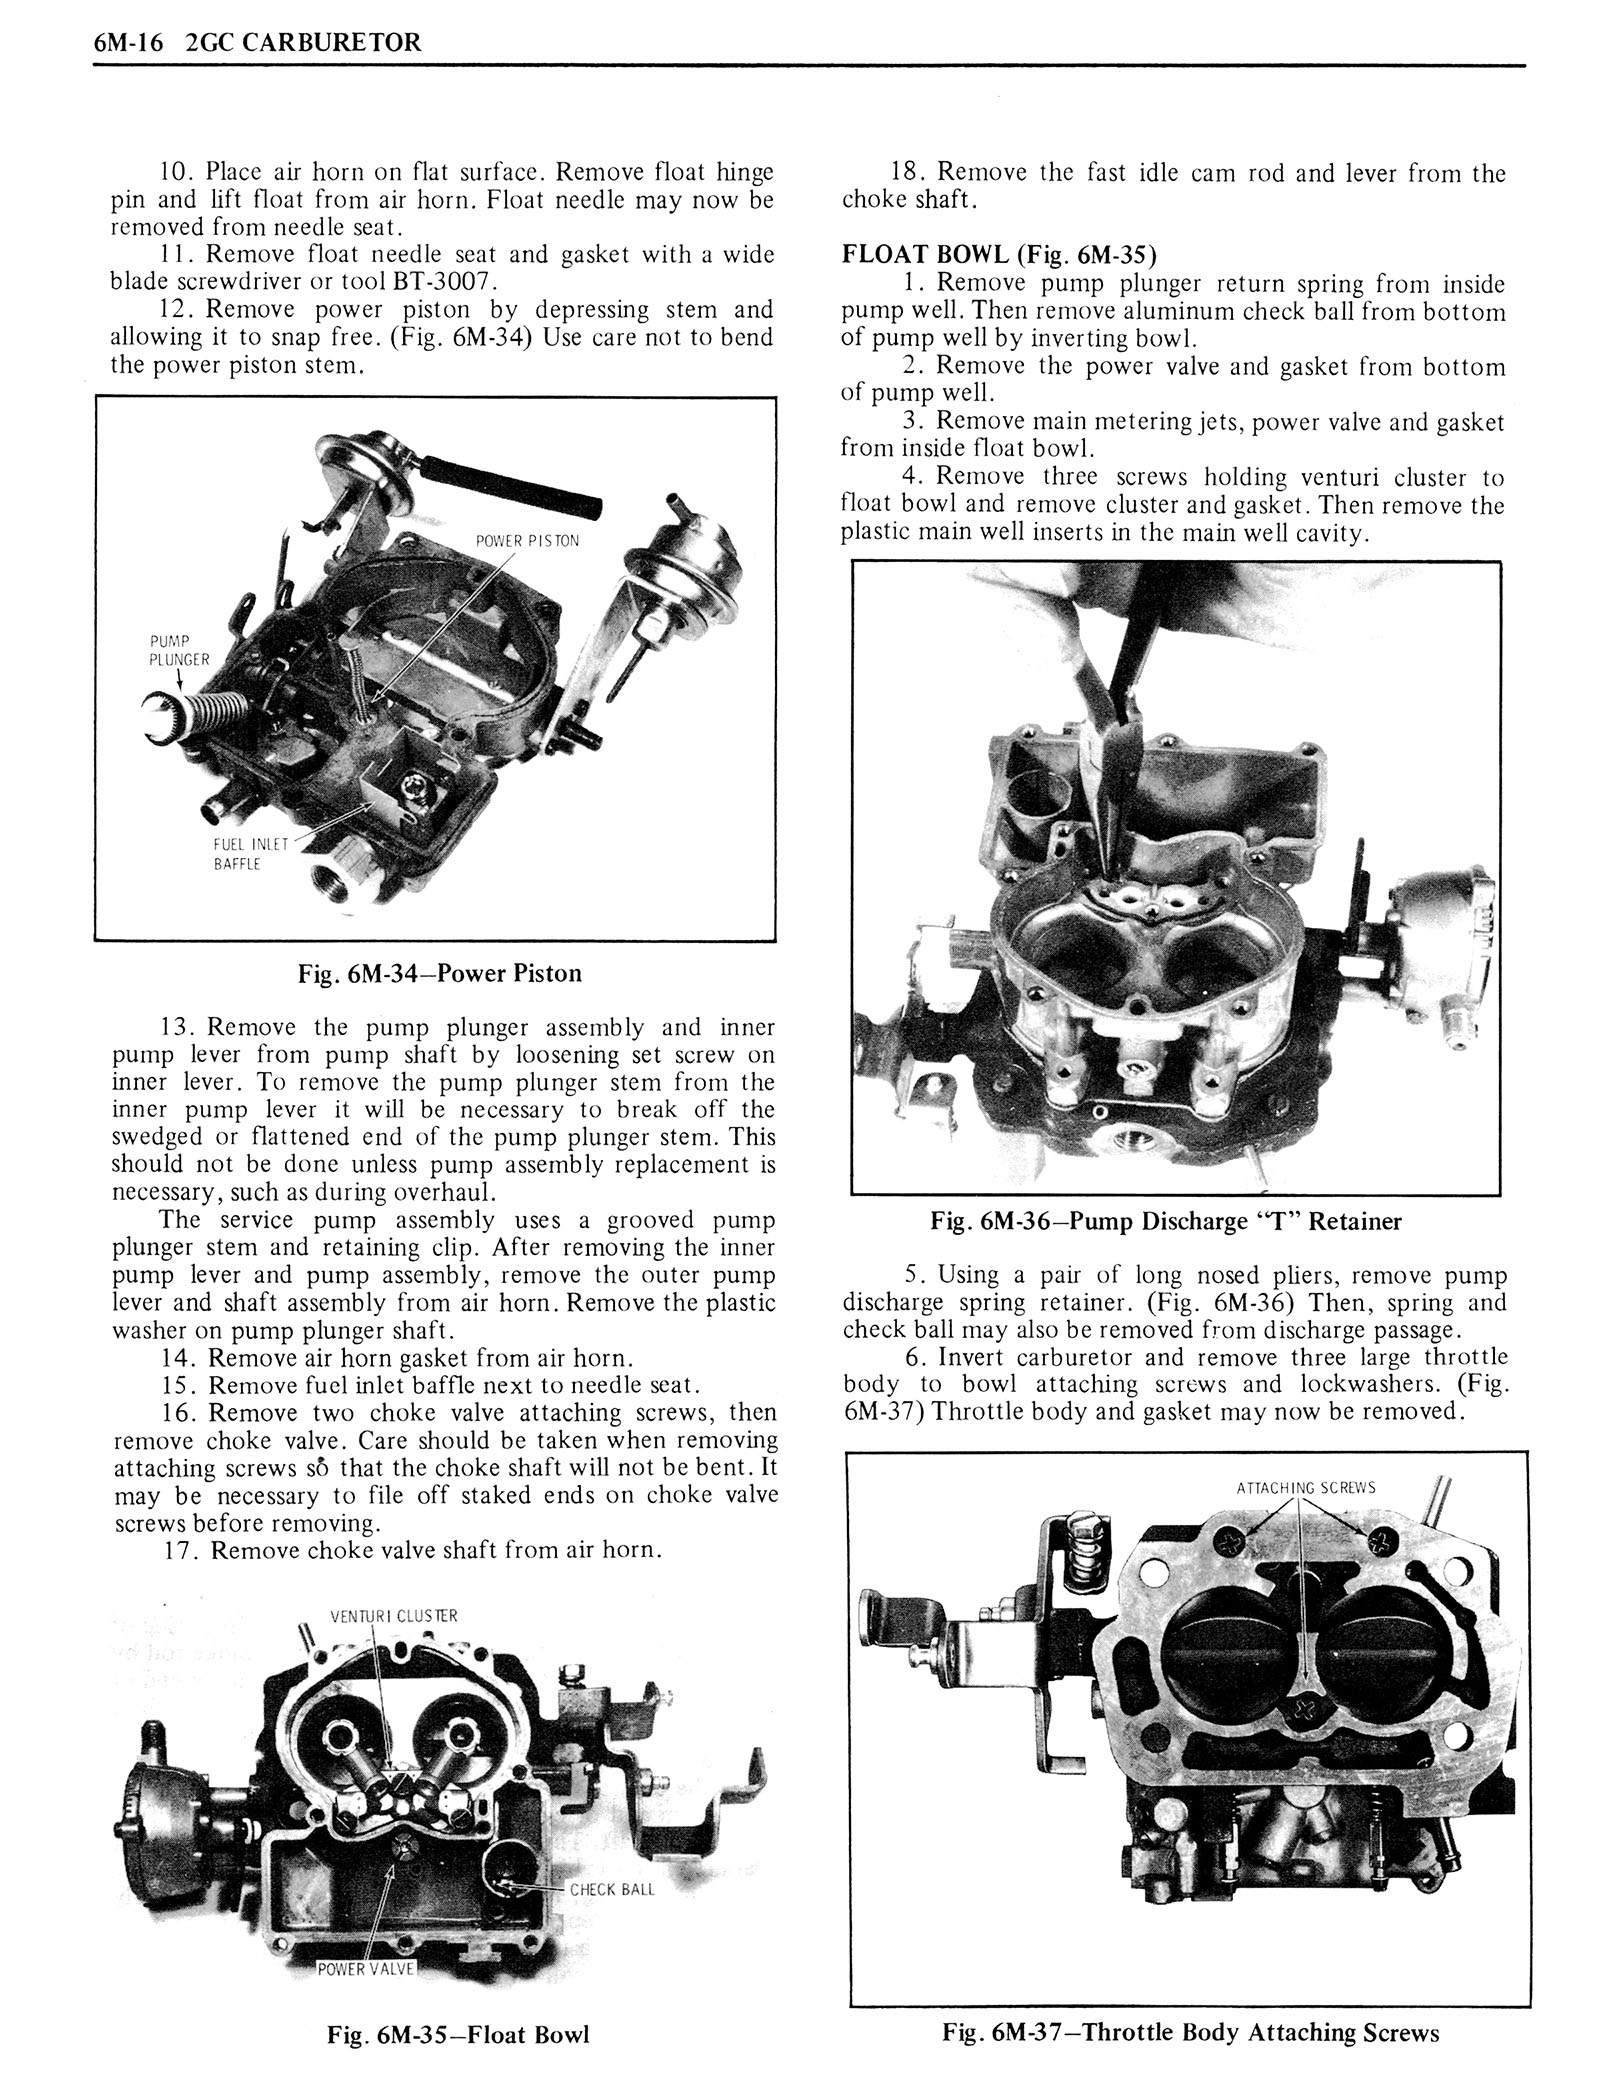 1976 Oldsmobile Service Manual page 570 of 1390